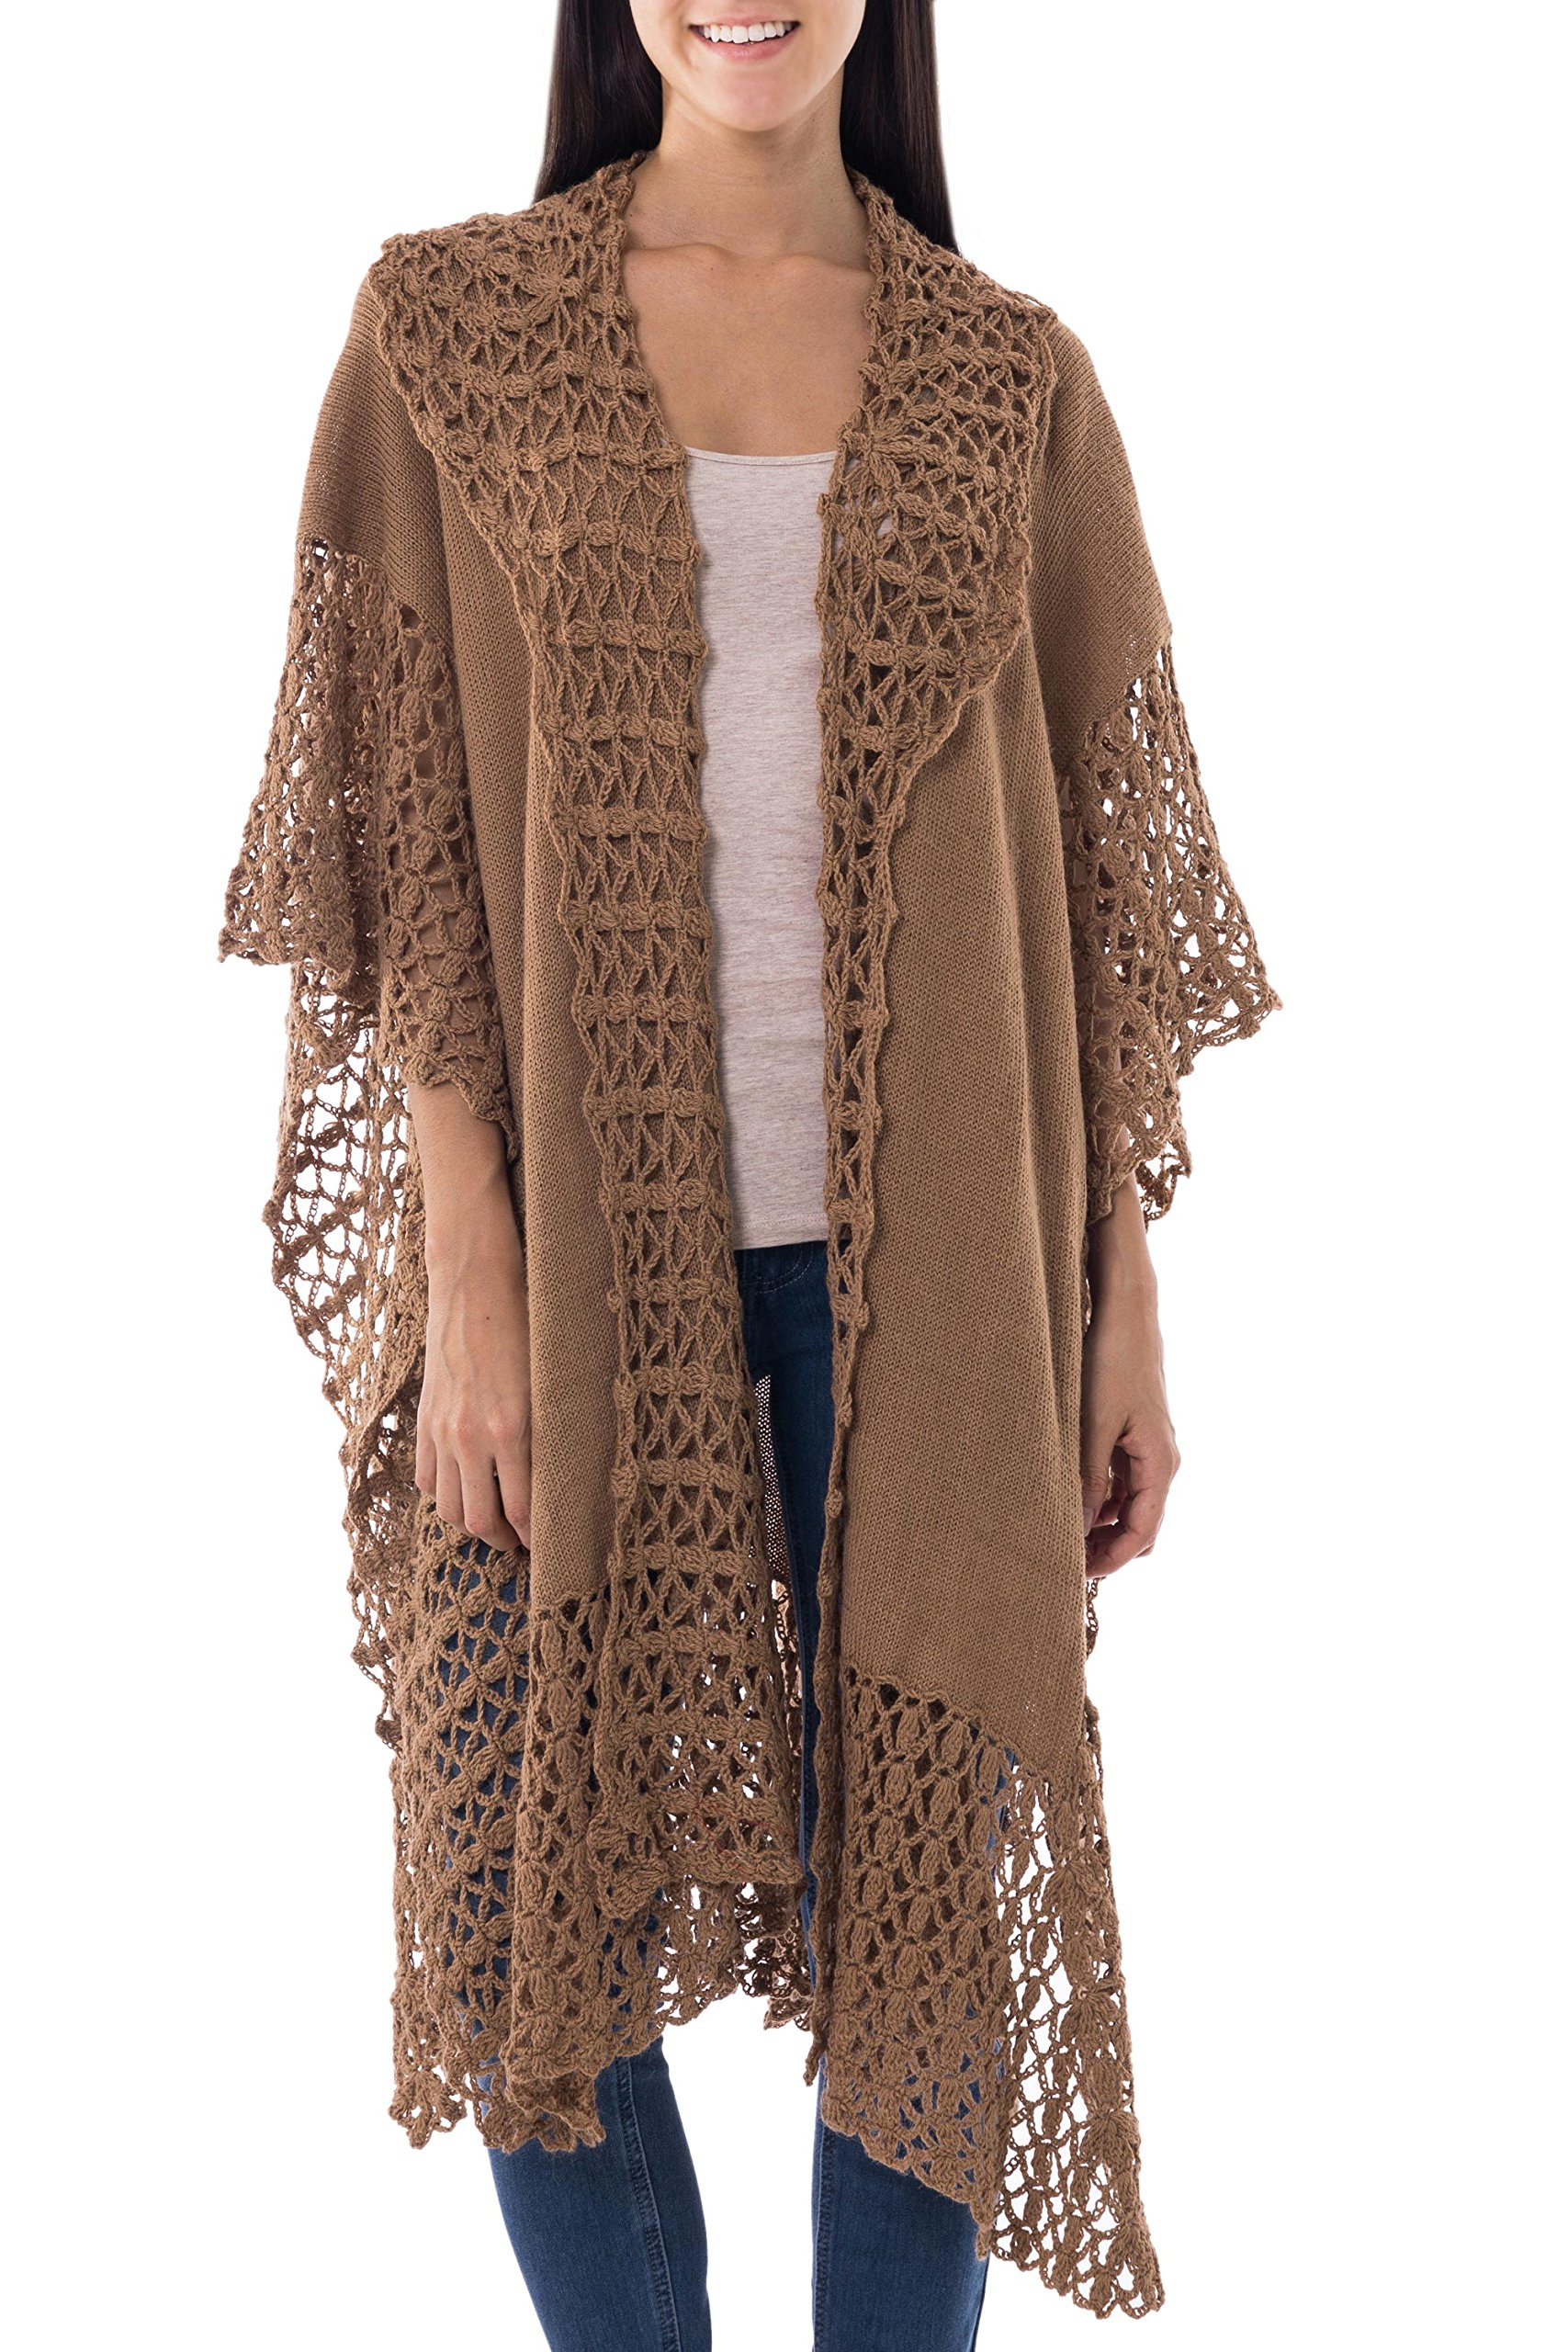 NOVICA Brown 100% Alpaca Ruana Cloak Poncho, 'Spiced Cider' by NOVICA